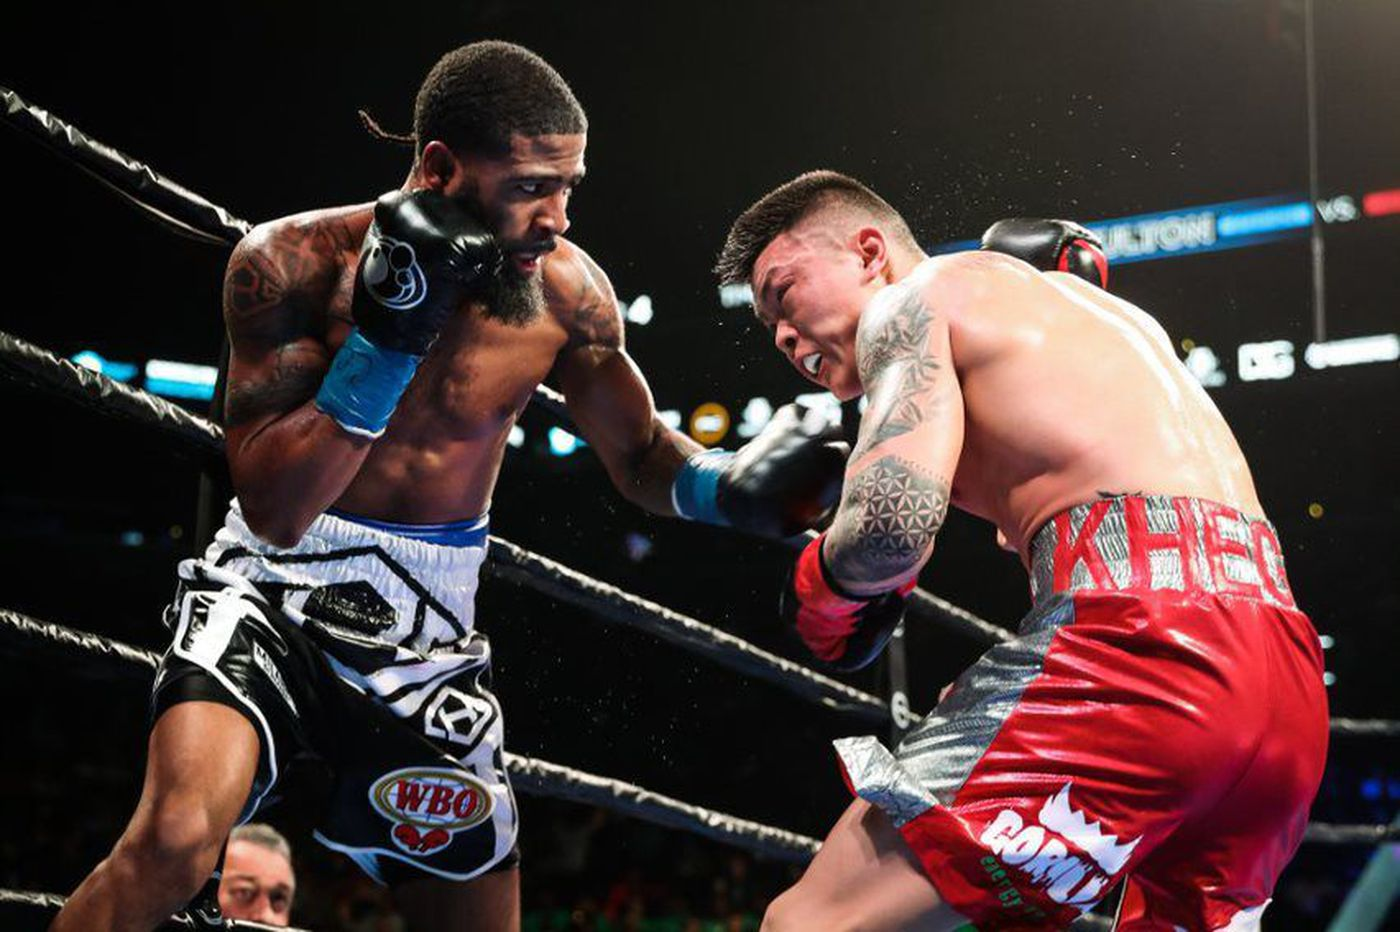 Philly boxer Stephen Fulton to fight Angelo Leo for junior featherweight title on Jan. 23